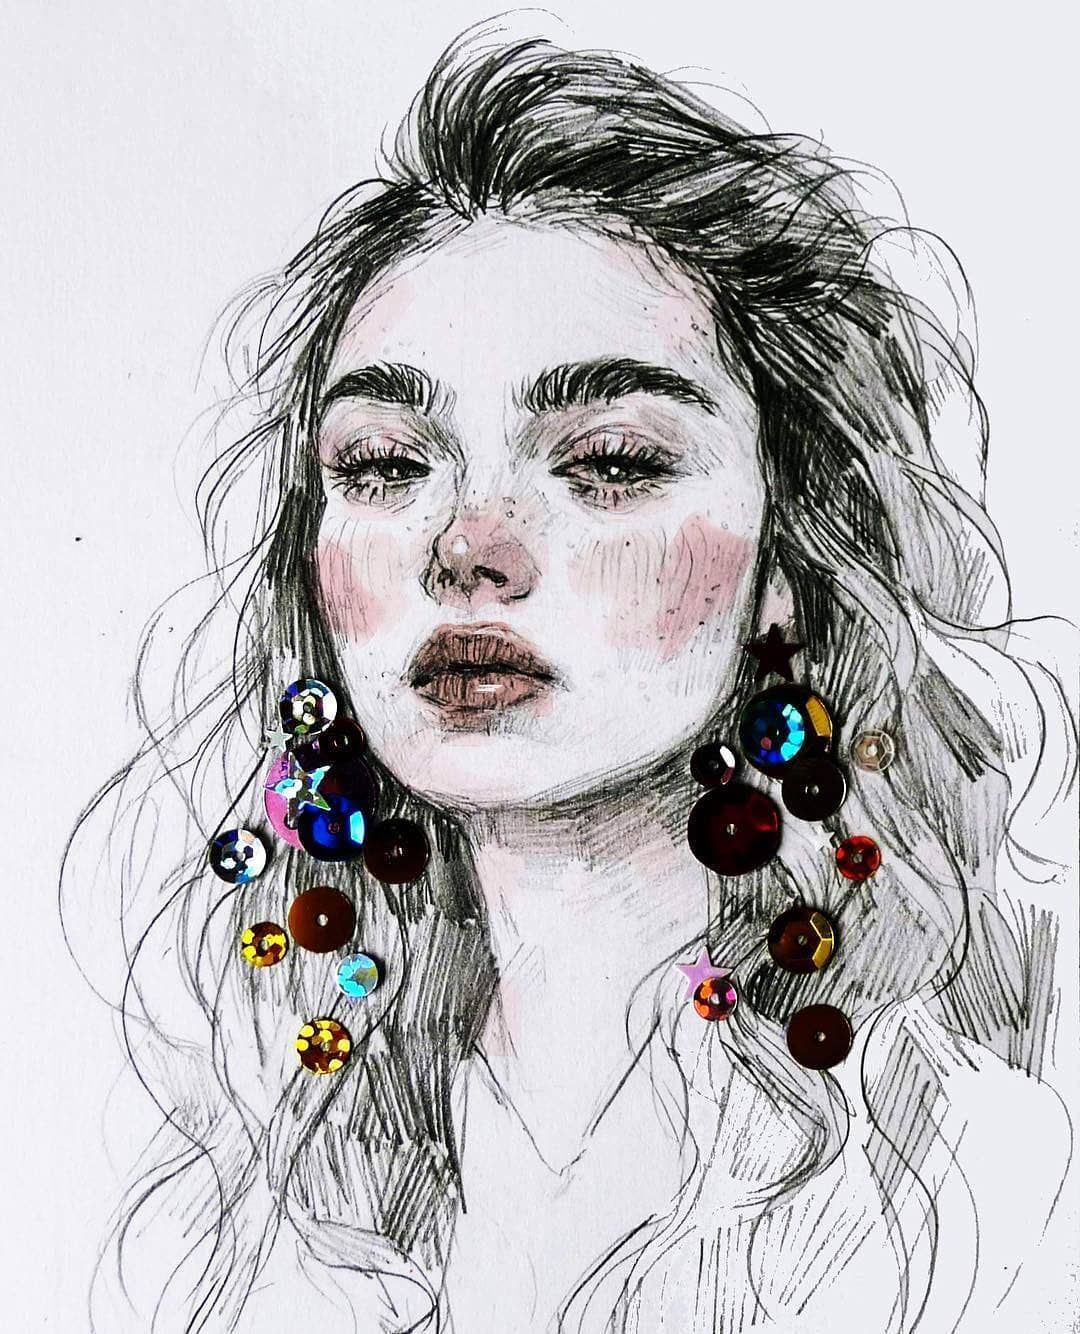 Easing back into doing more quick sketches dailydrawing dailysketch drawing pencilportrait portrait illustration mixedmedia sequins freckles